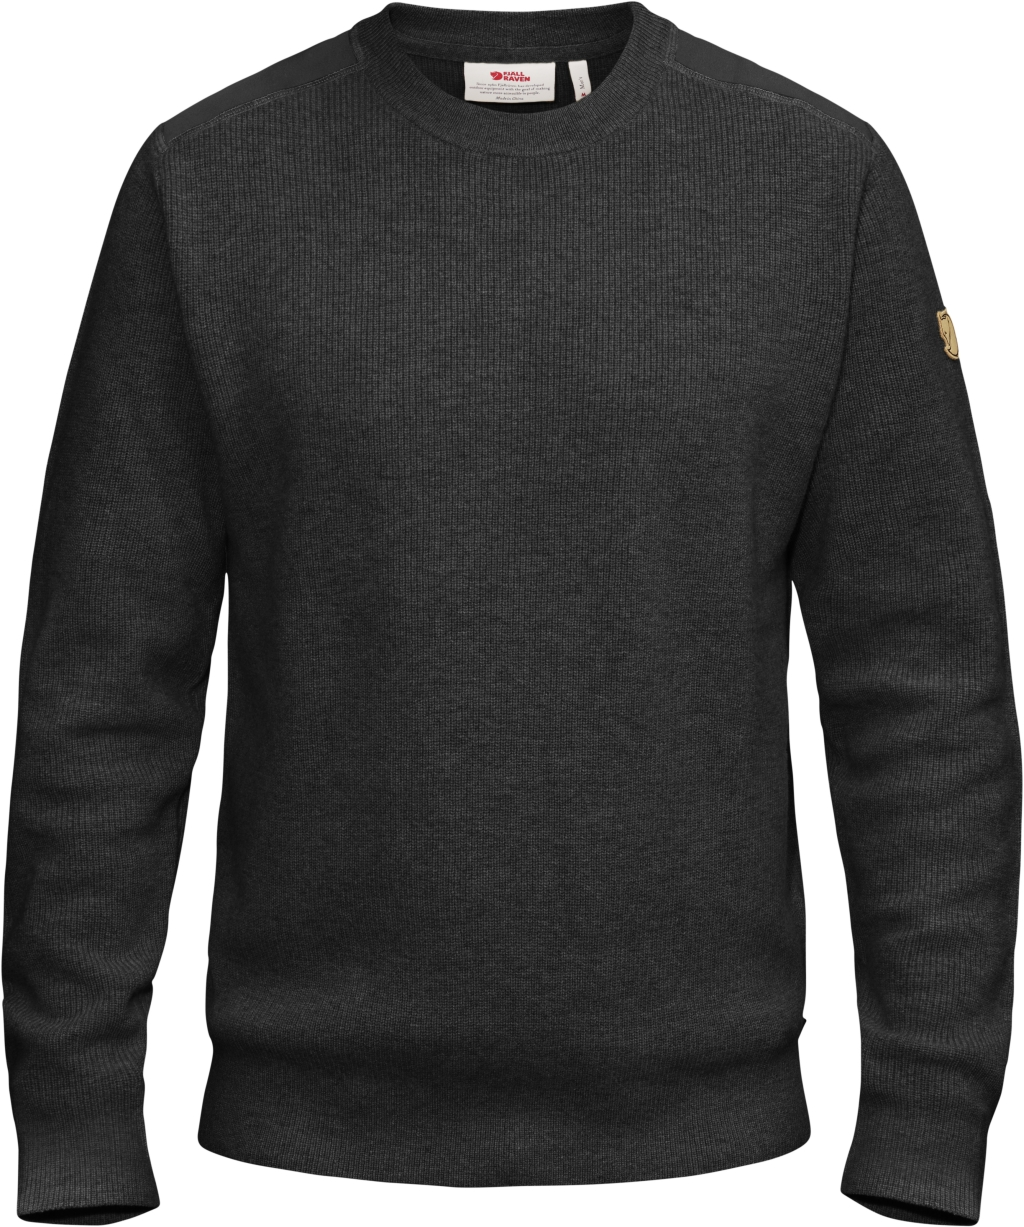 FjallRaven Sormland Crew Sweater Dark Grey-30